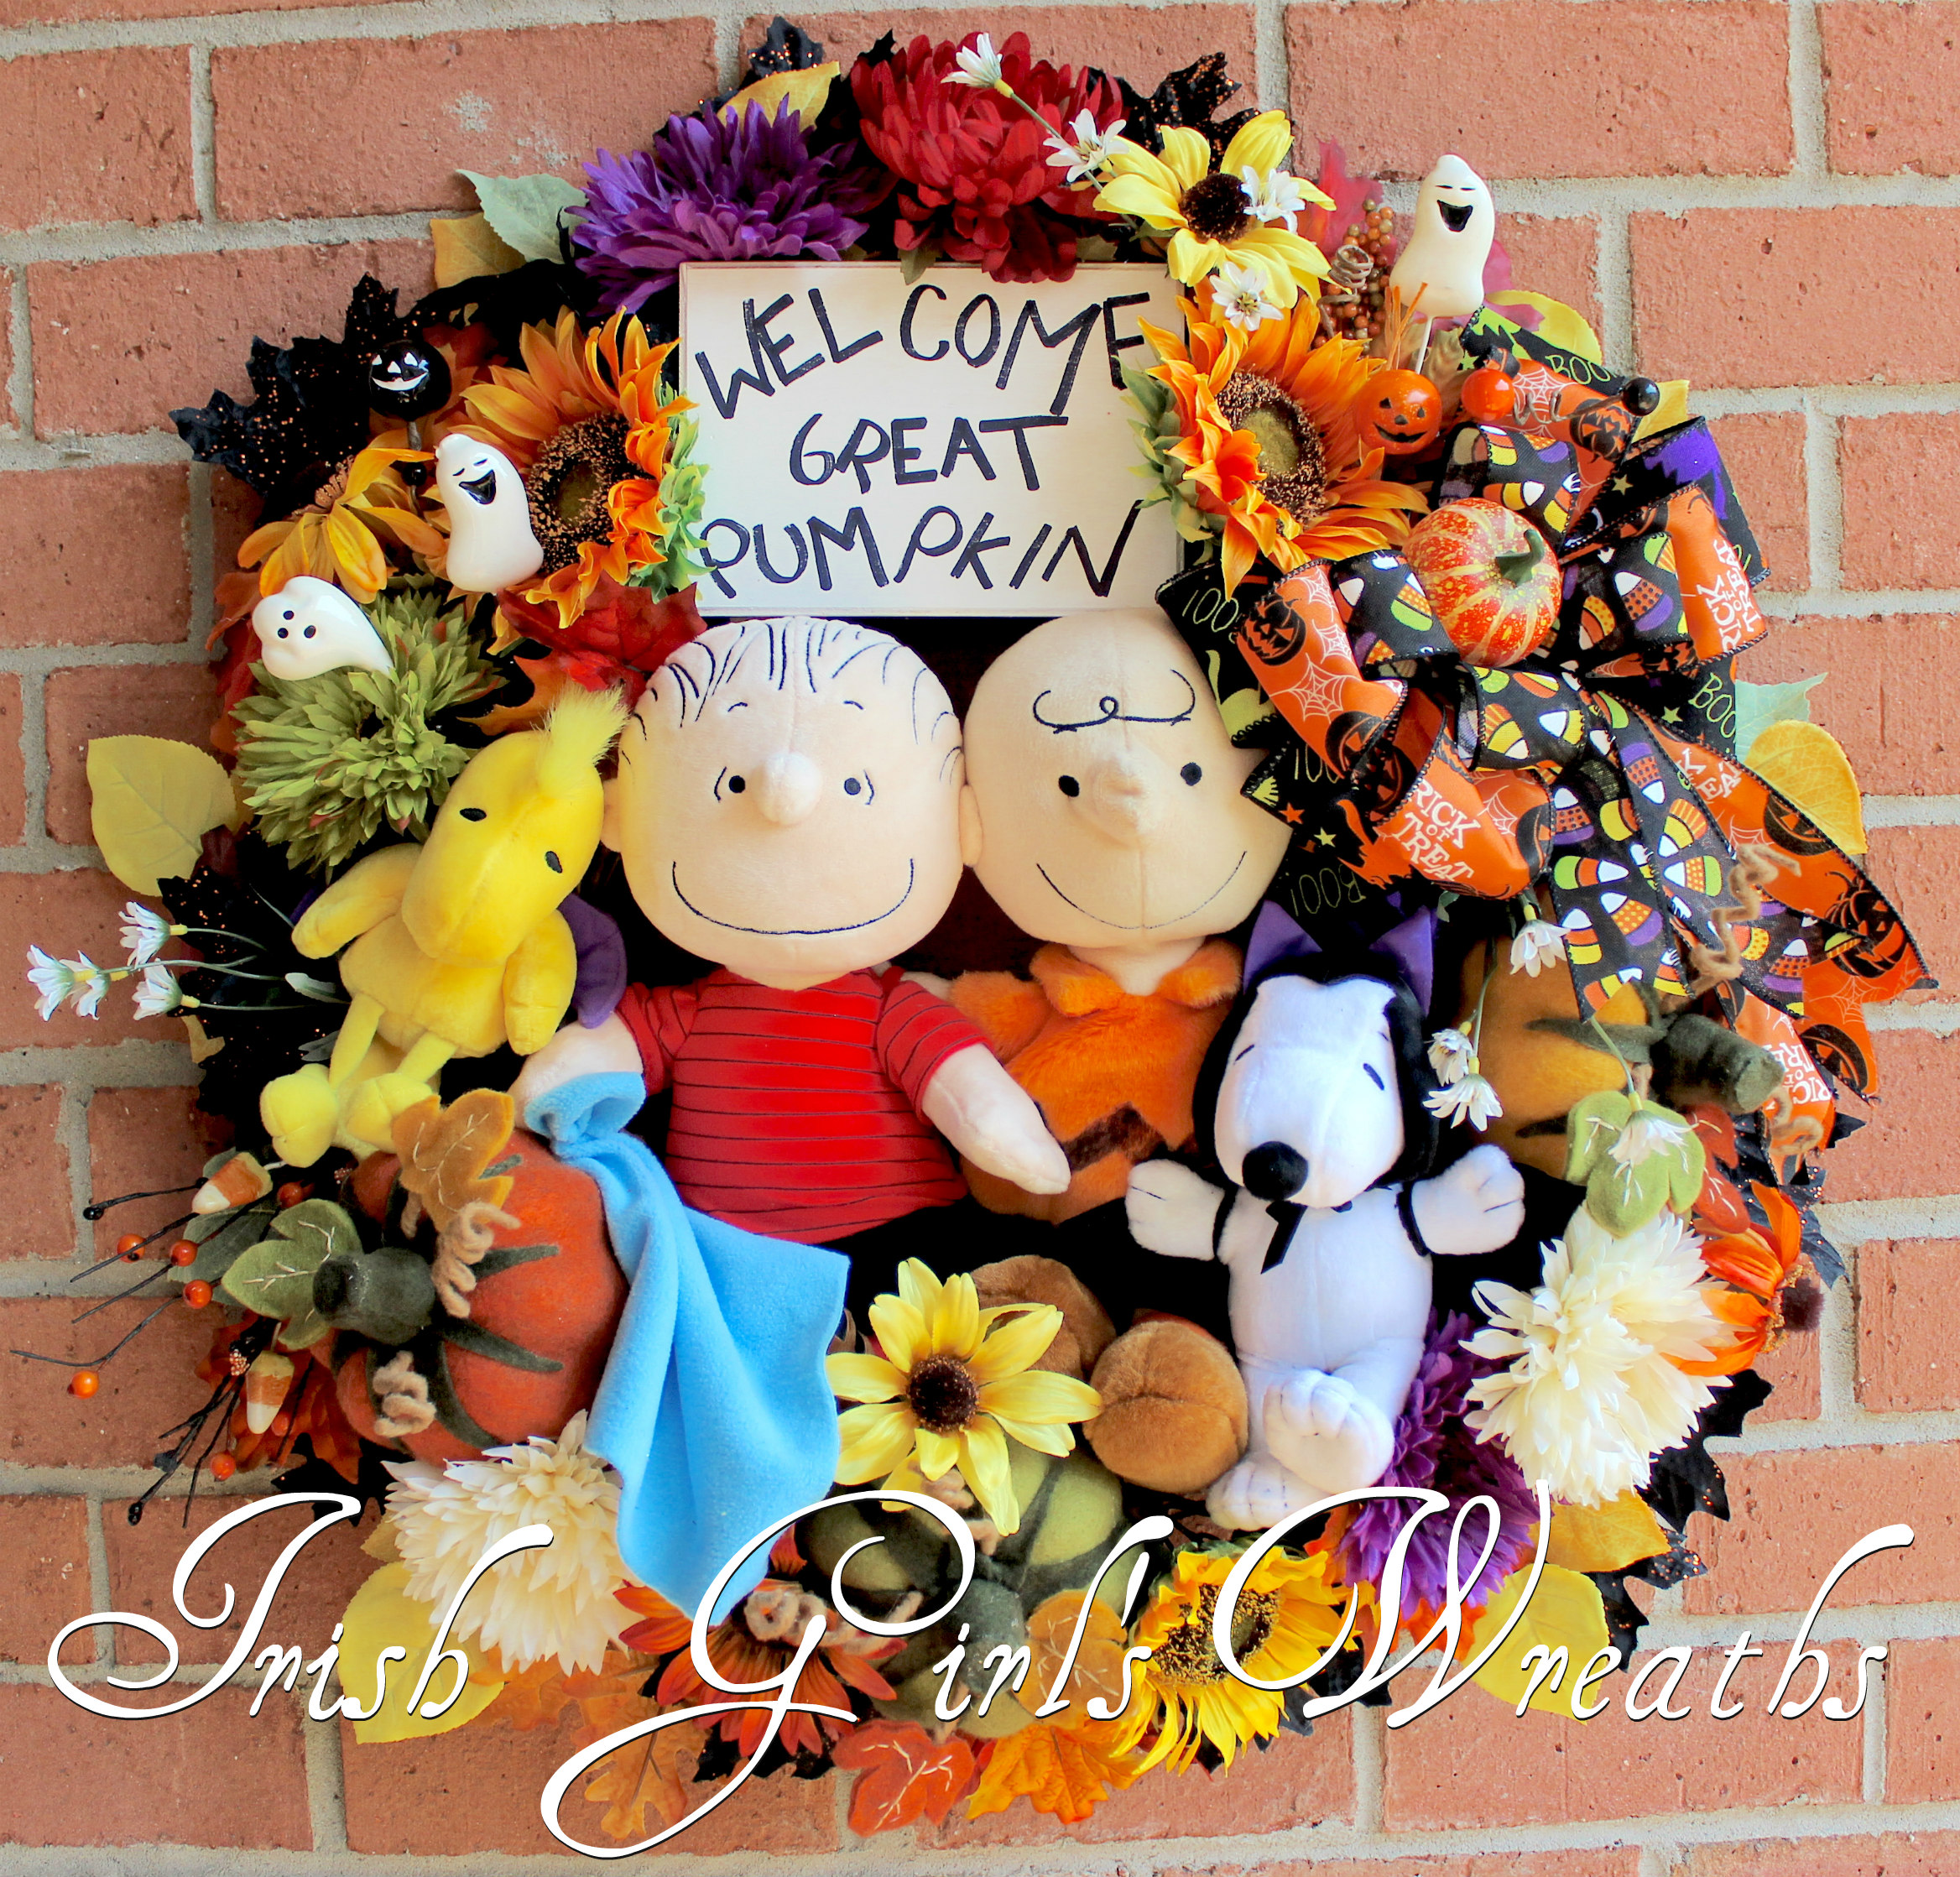 LAST 1 – Great Pumpkin Halloween Wreath, Charlie Brown, Linus, Snoopy, Woodstock, Peanuts Gang Decor